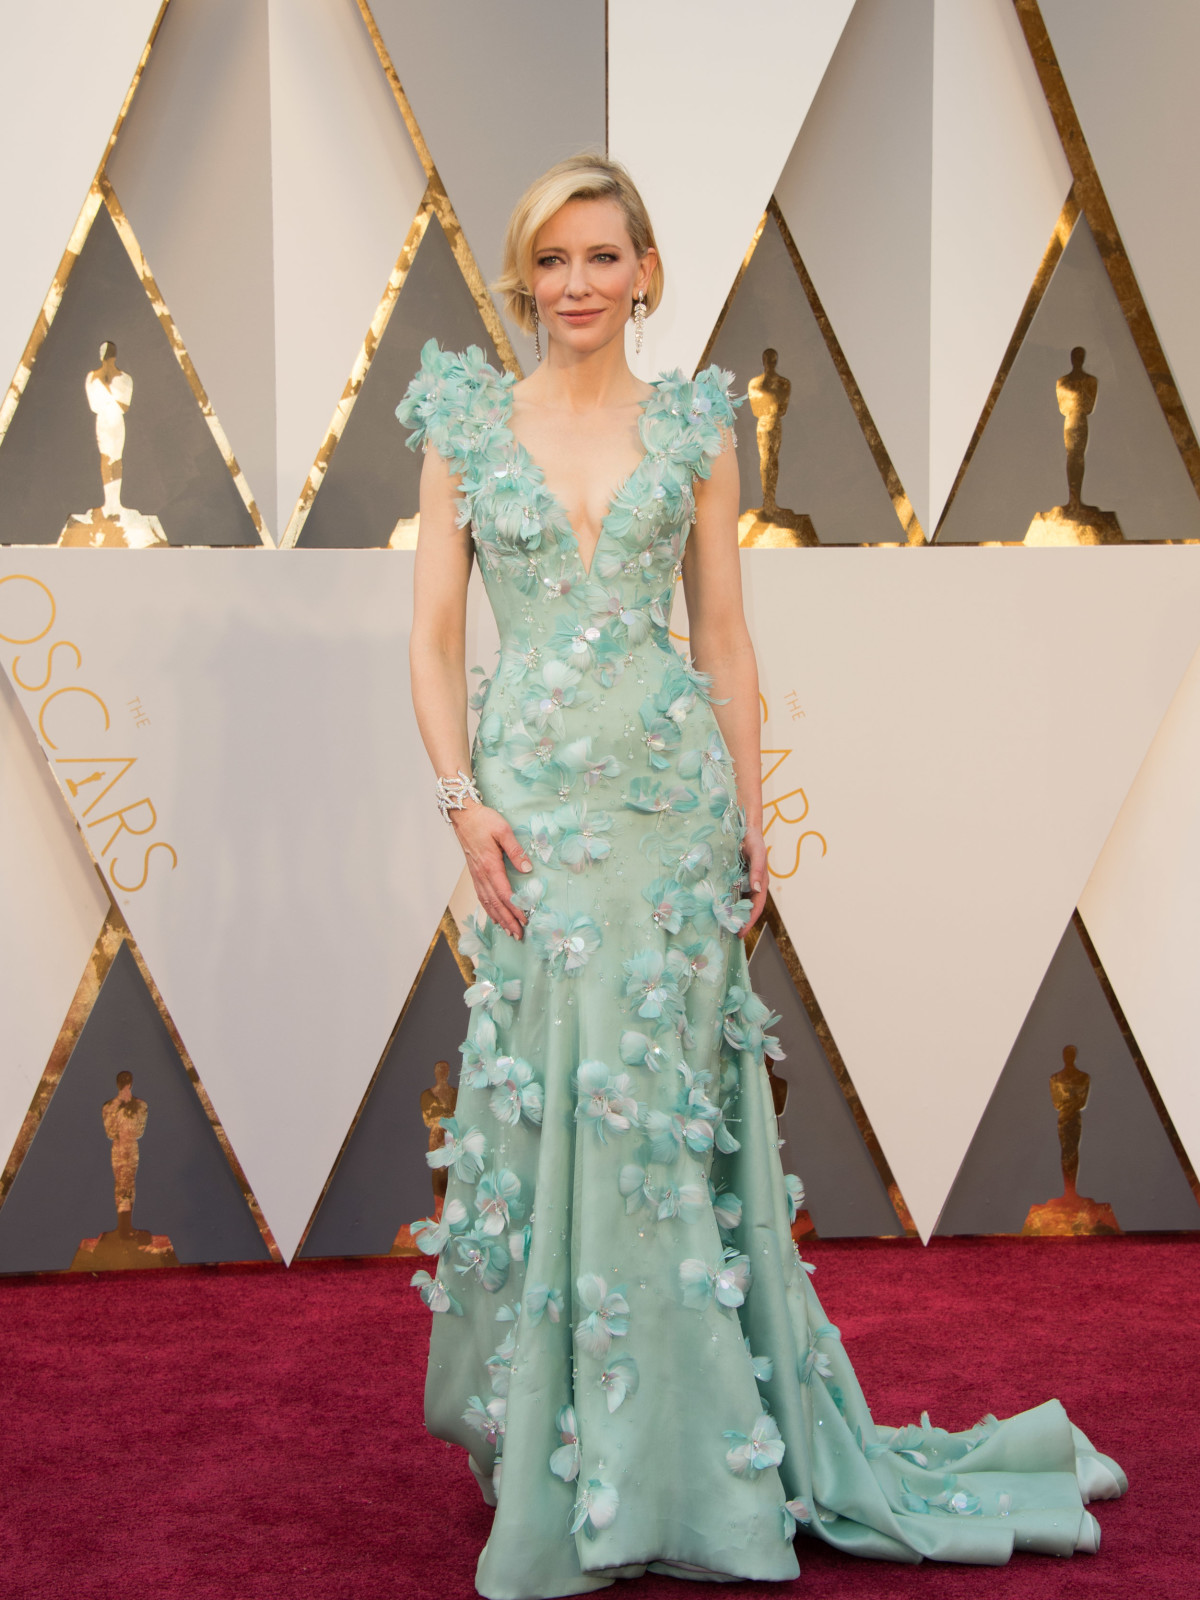 Cate Blanchett at Oscars